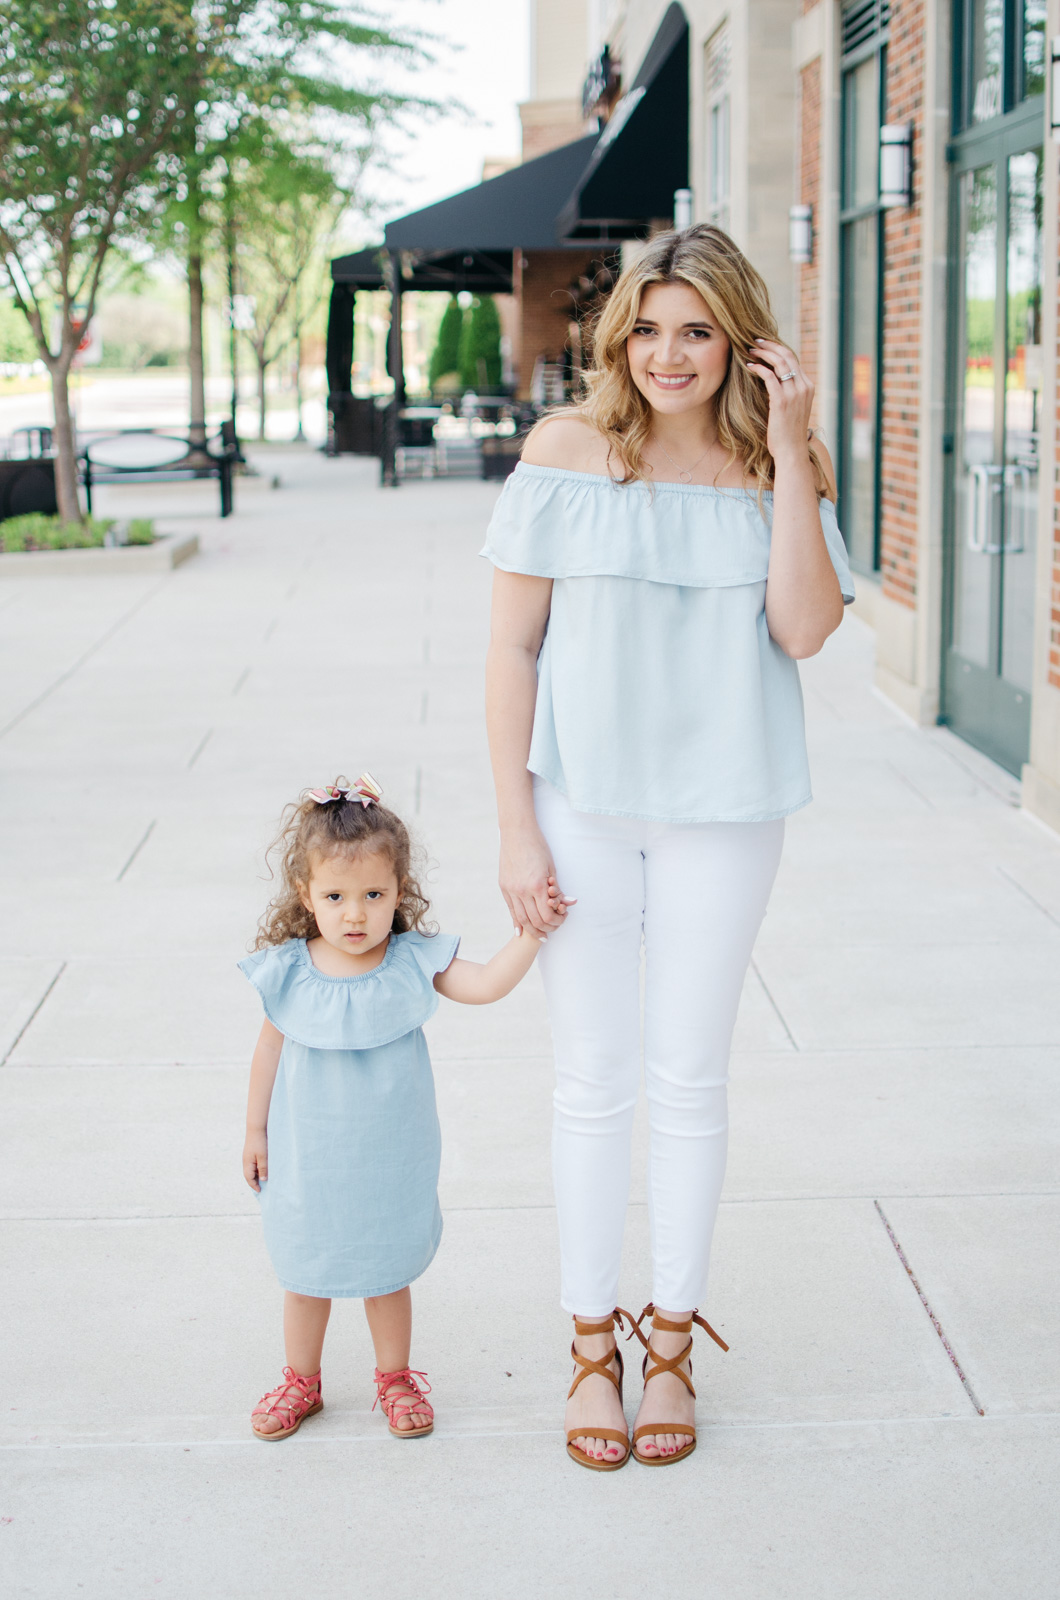 mother daughter spring outfit | For more cute Spring outfit ideas, head to bylaurenm.com!